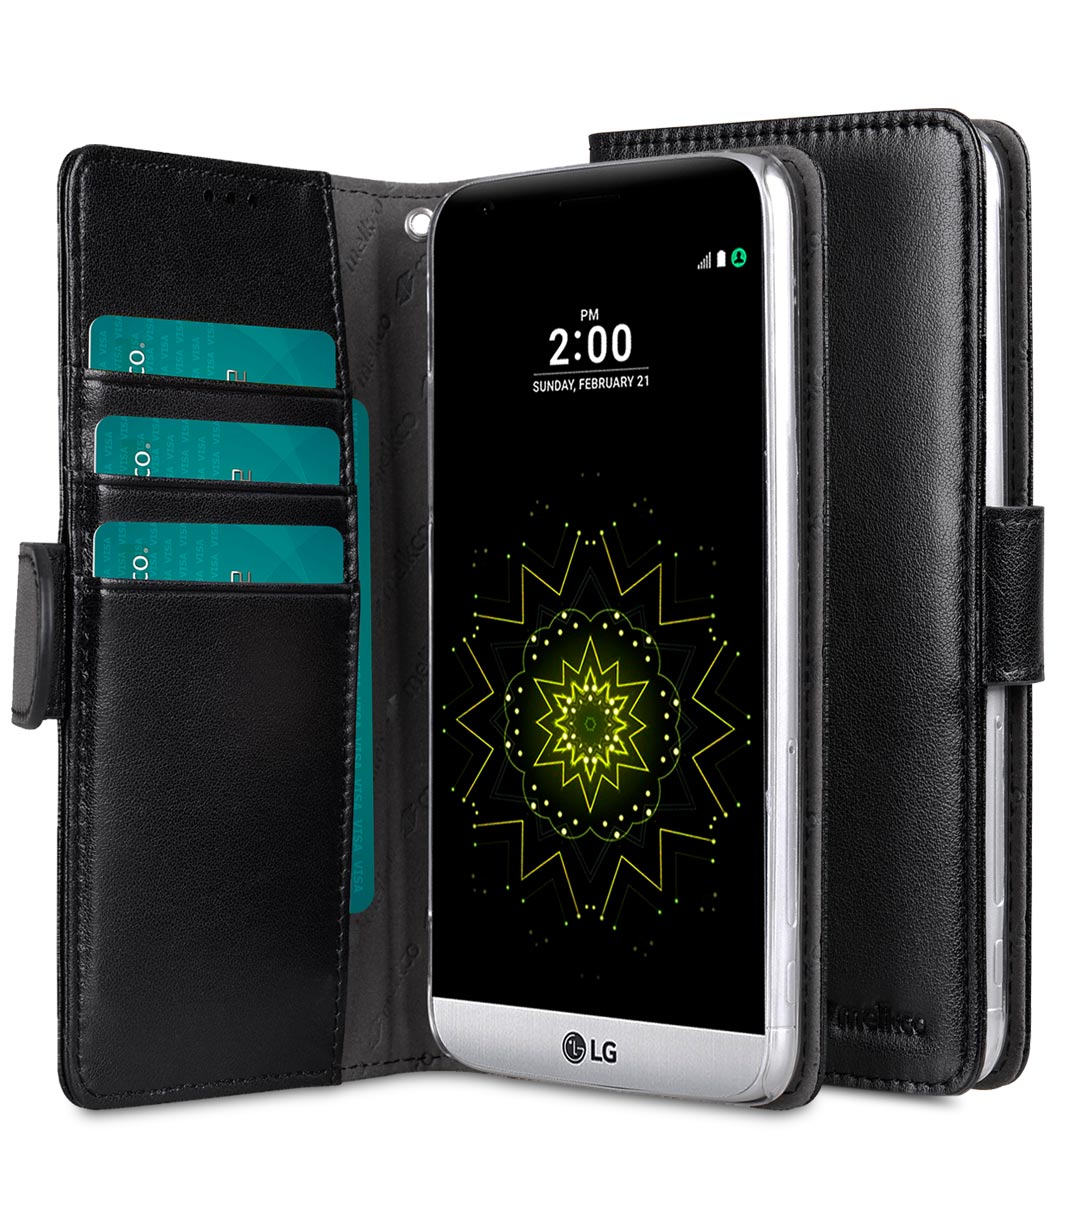 cheaper ad9fe 0ecdf PU Cases for LG G5 - Wallet Book Clear Type (Black PU)